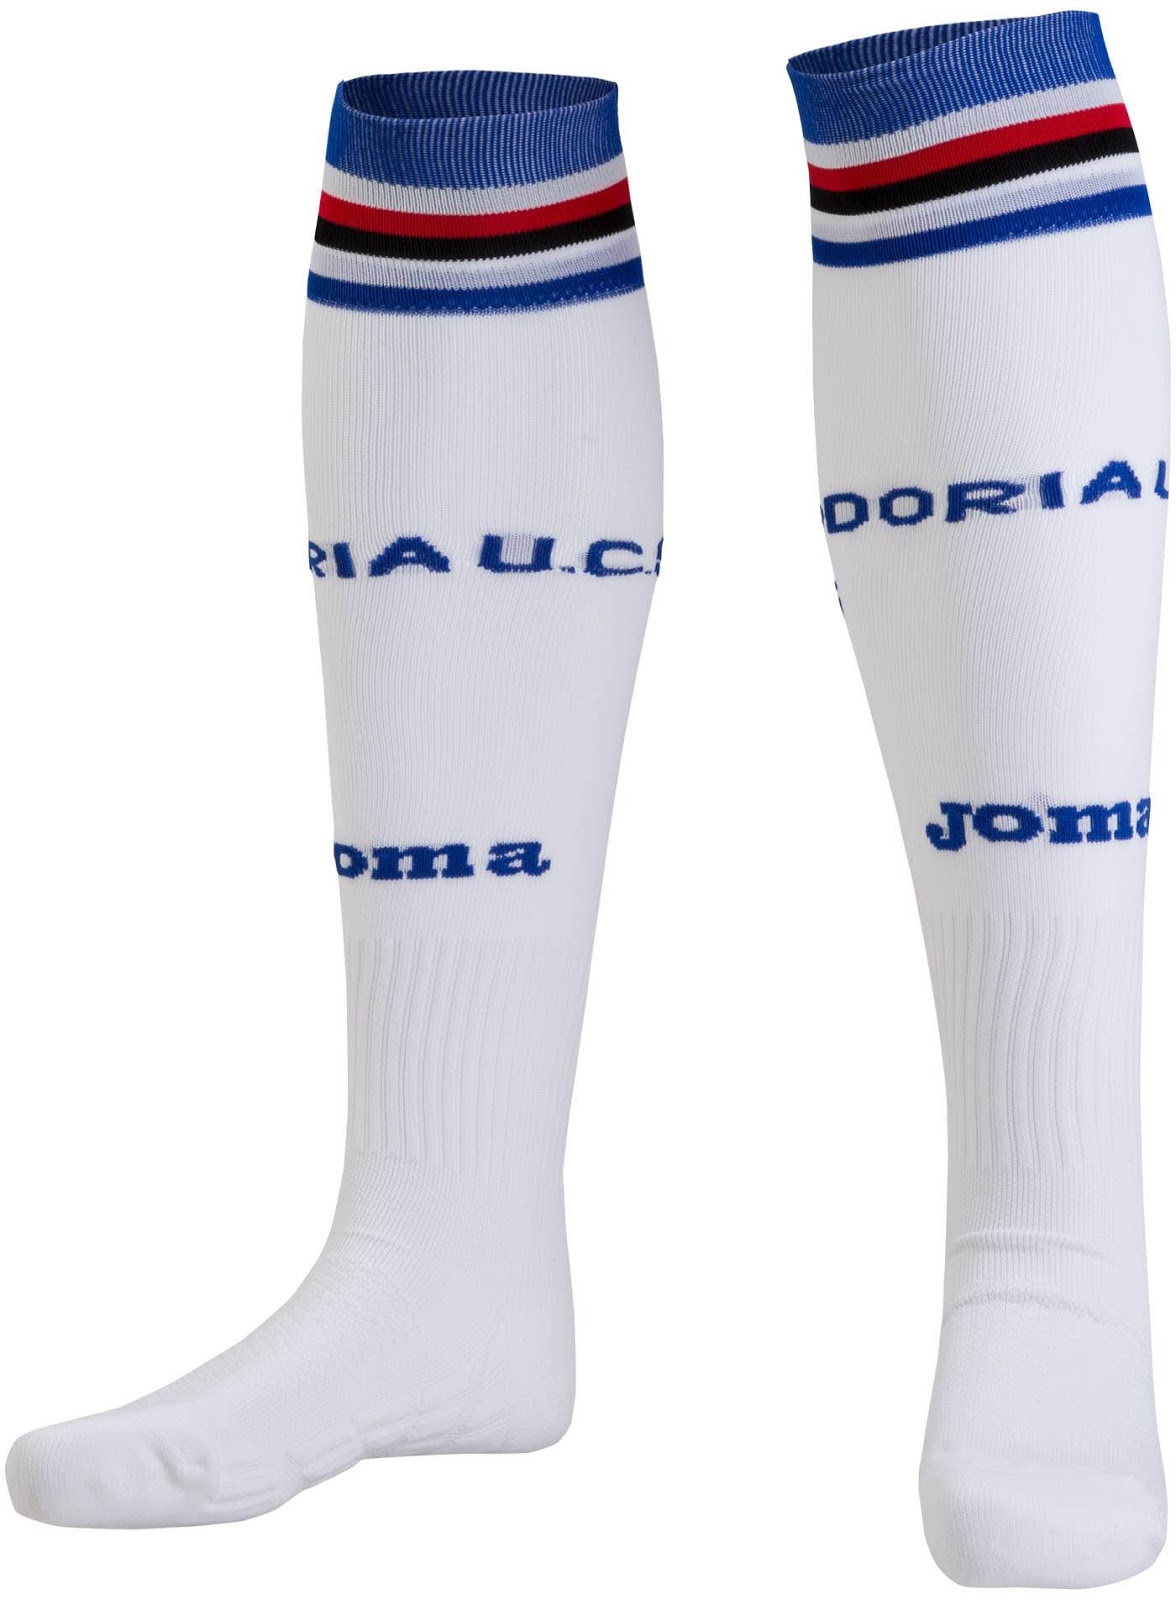 sampdoria-16-17-kits-away-socks